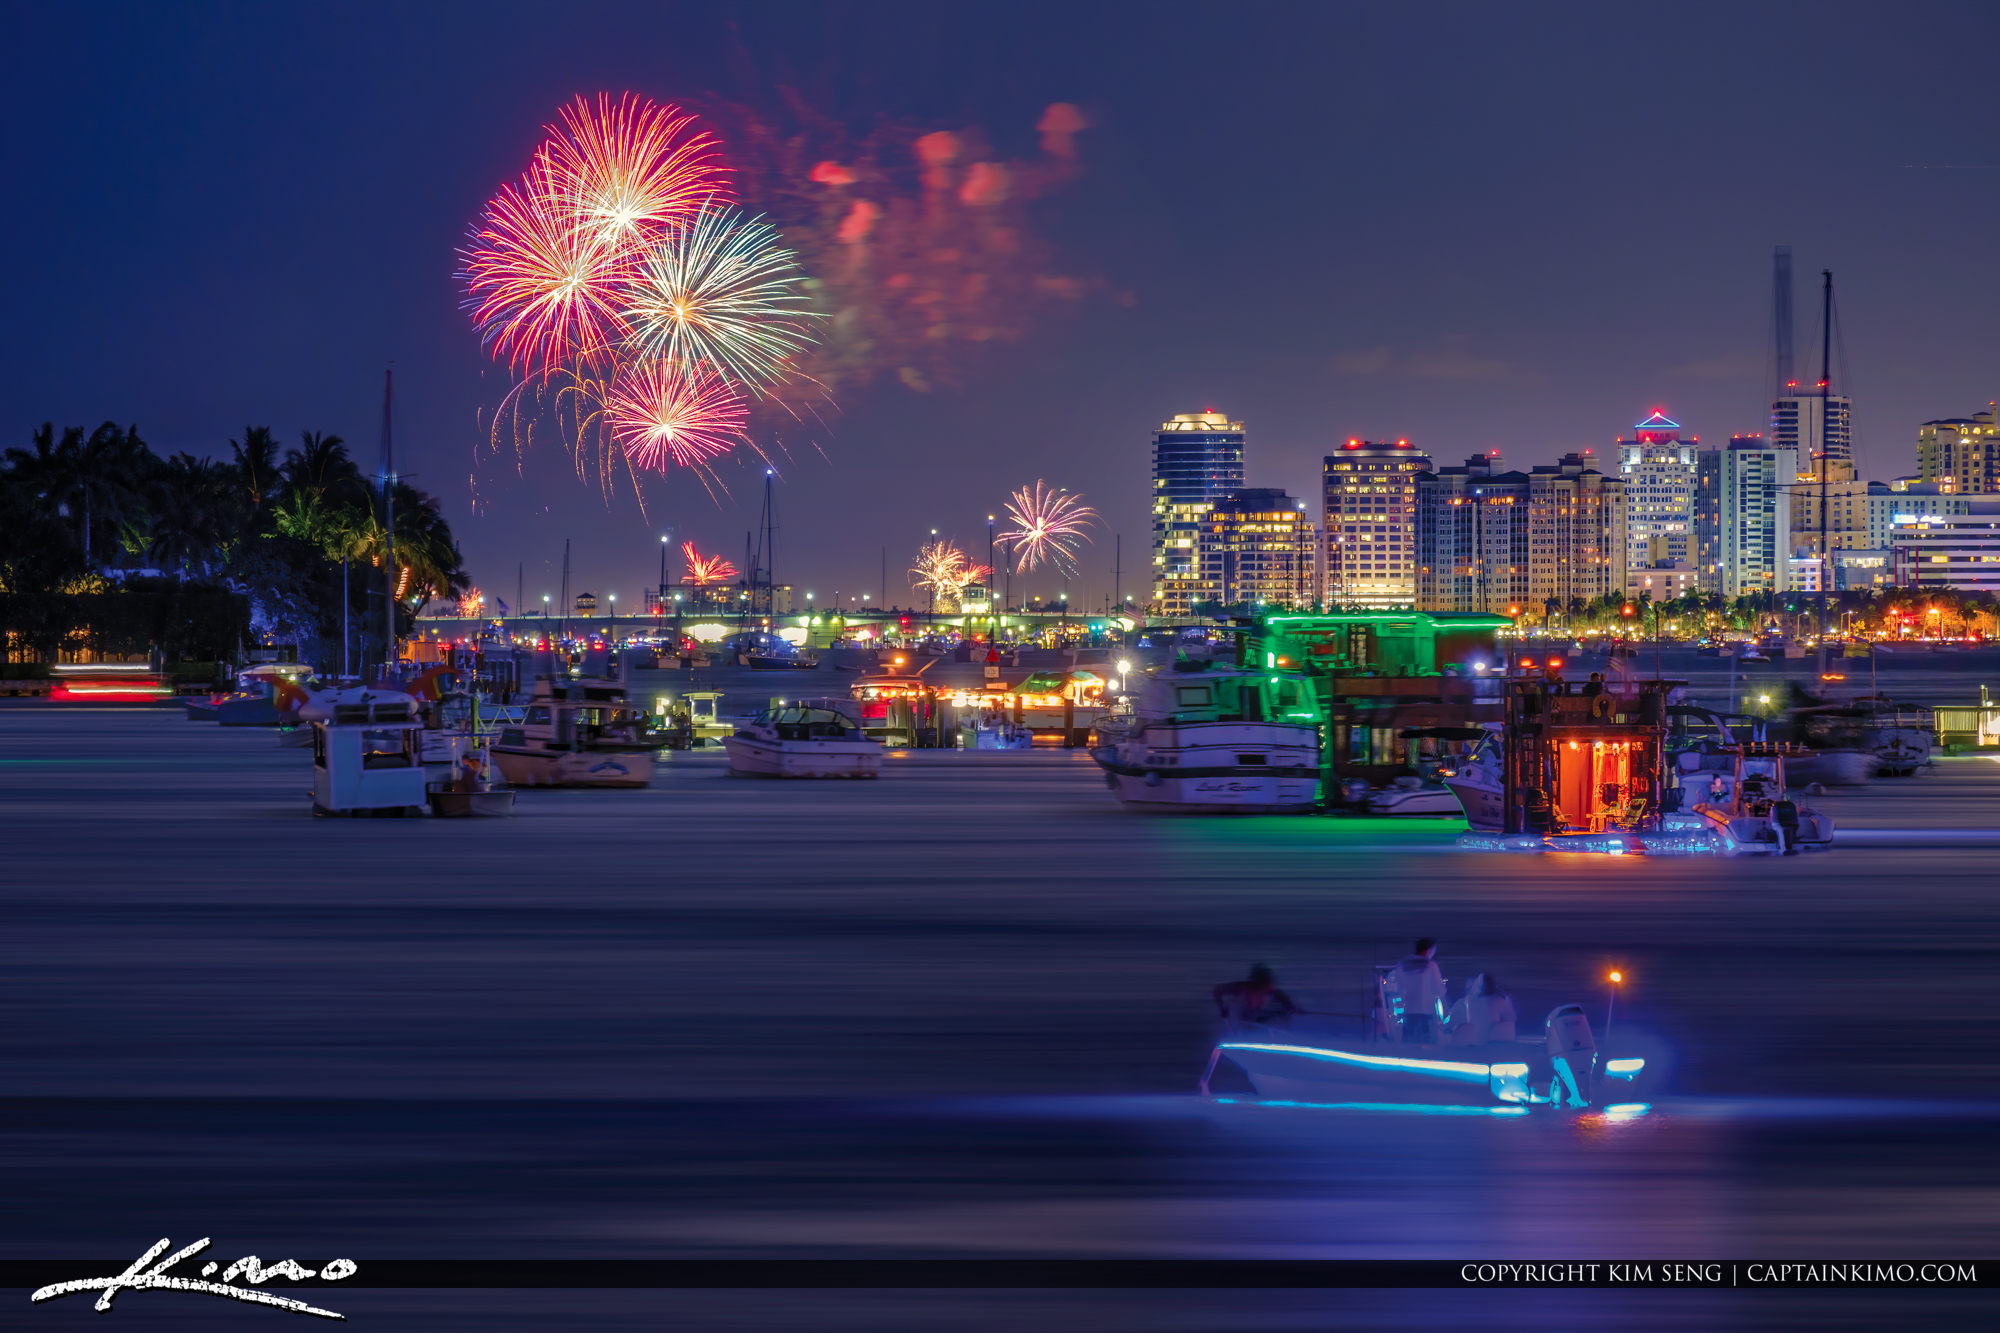 West Palm Beach 4th of July 2019 Fireworks